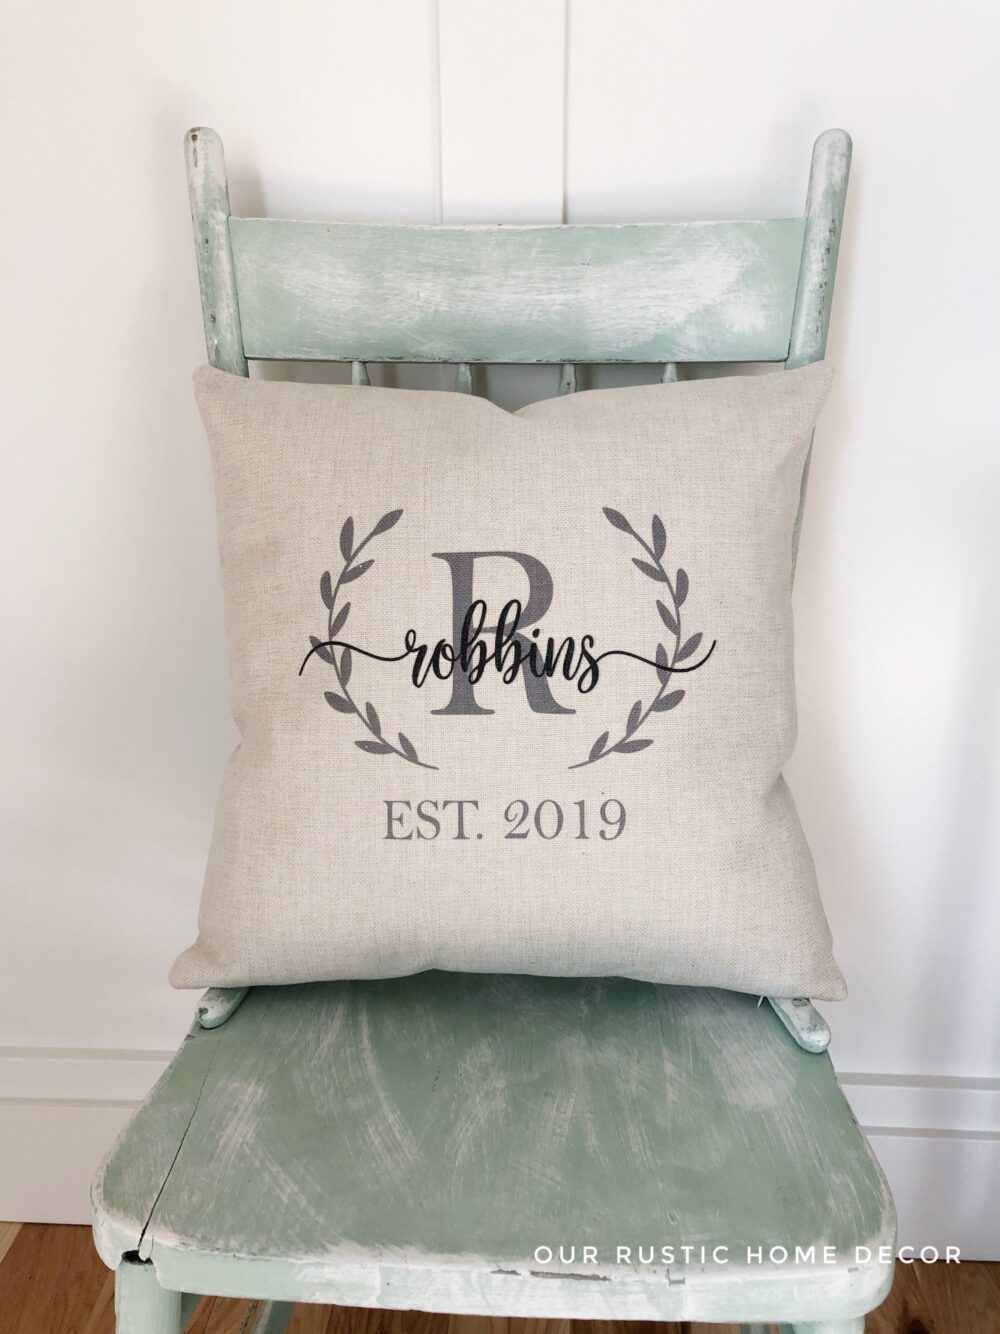 Farmhouse Monogram Pillow Covers - Wedding Gift Pillows With Personalized Name & Established Date Custom Throw Rustic Decor